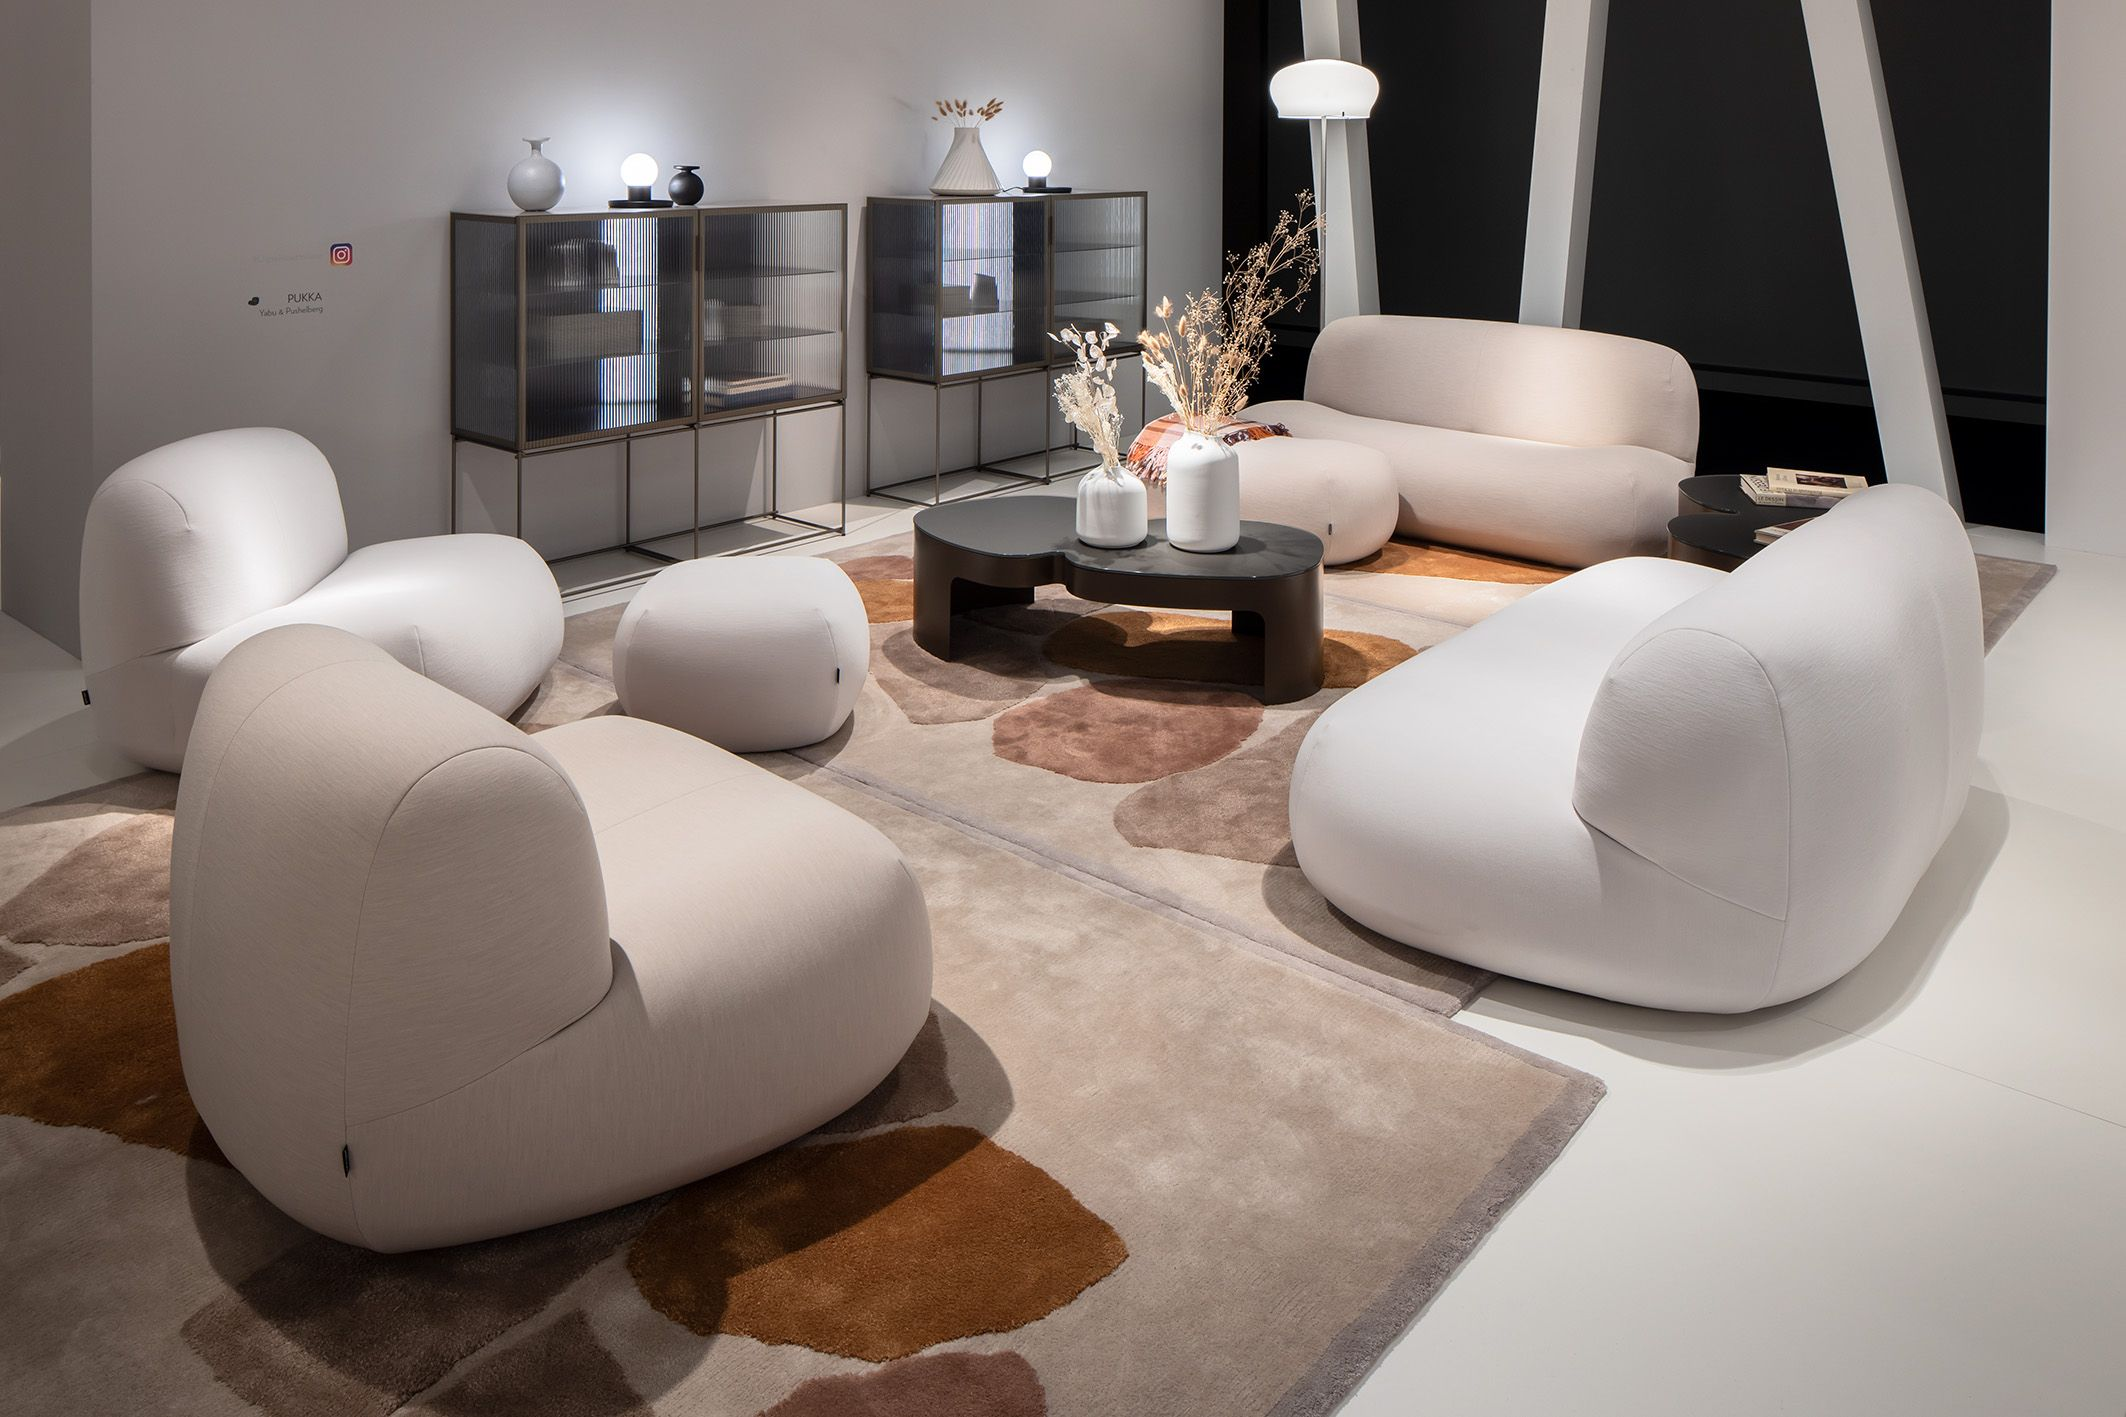 Pin By Ligne Roset Uk On Imm Cologne 2020 In 2020 Modern Furniture Stores Ligne Roset Furniture Store